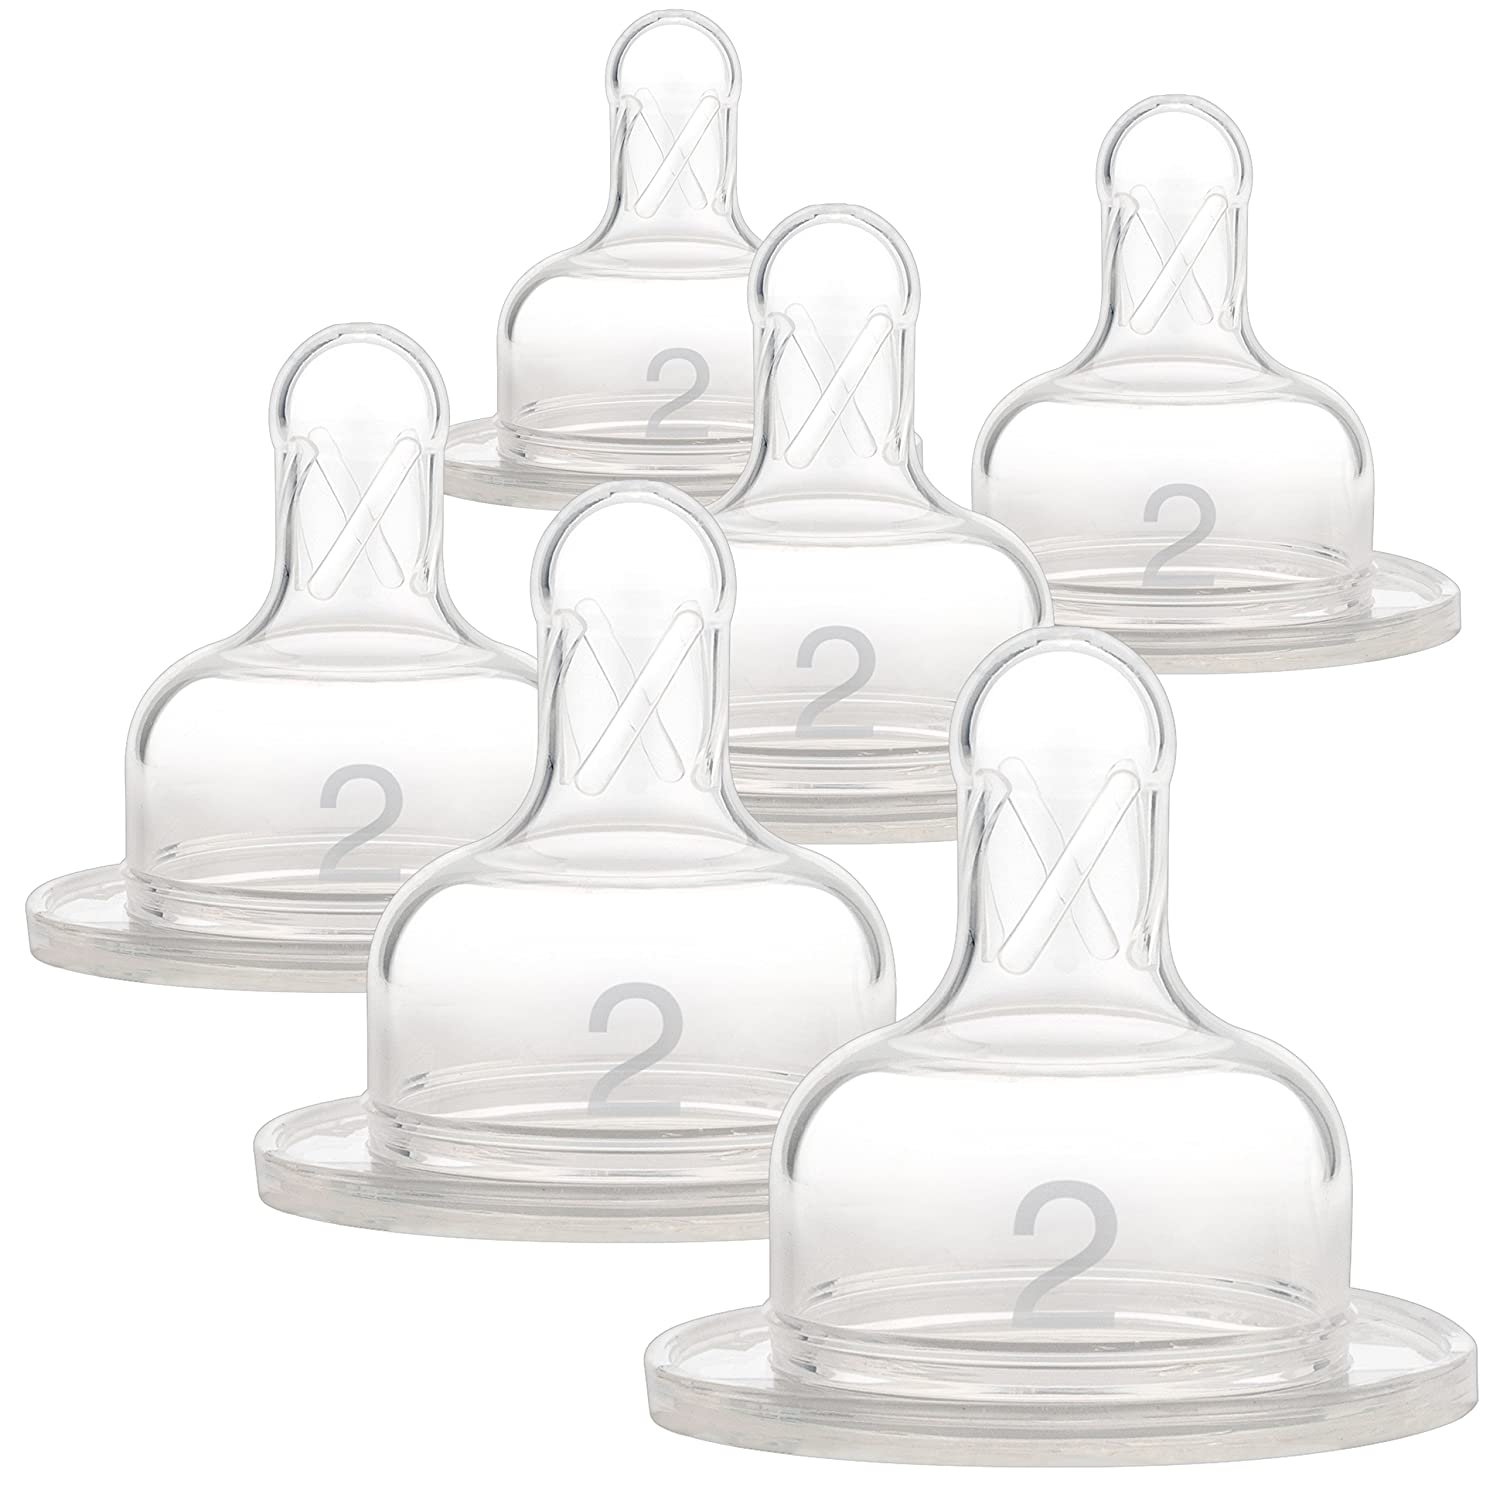 Dr. Brown's Original Wide-Neck Nipple, Level 3 (6m+), 6-pack, Clear Handi-craft Company WN361-WEB